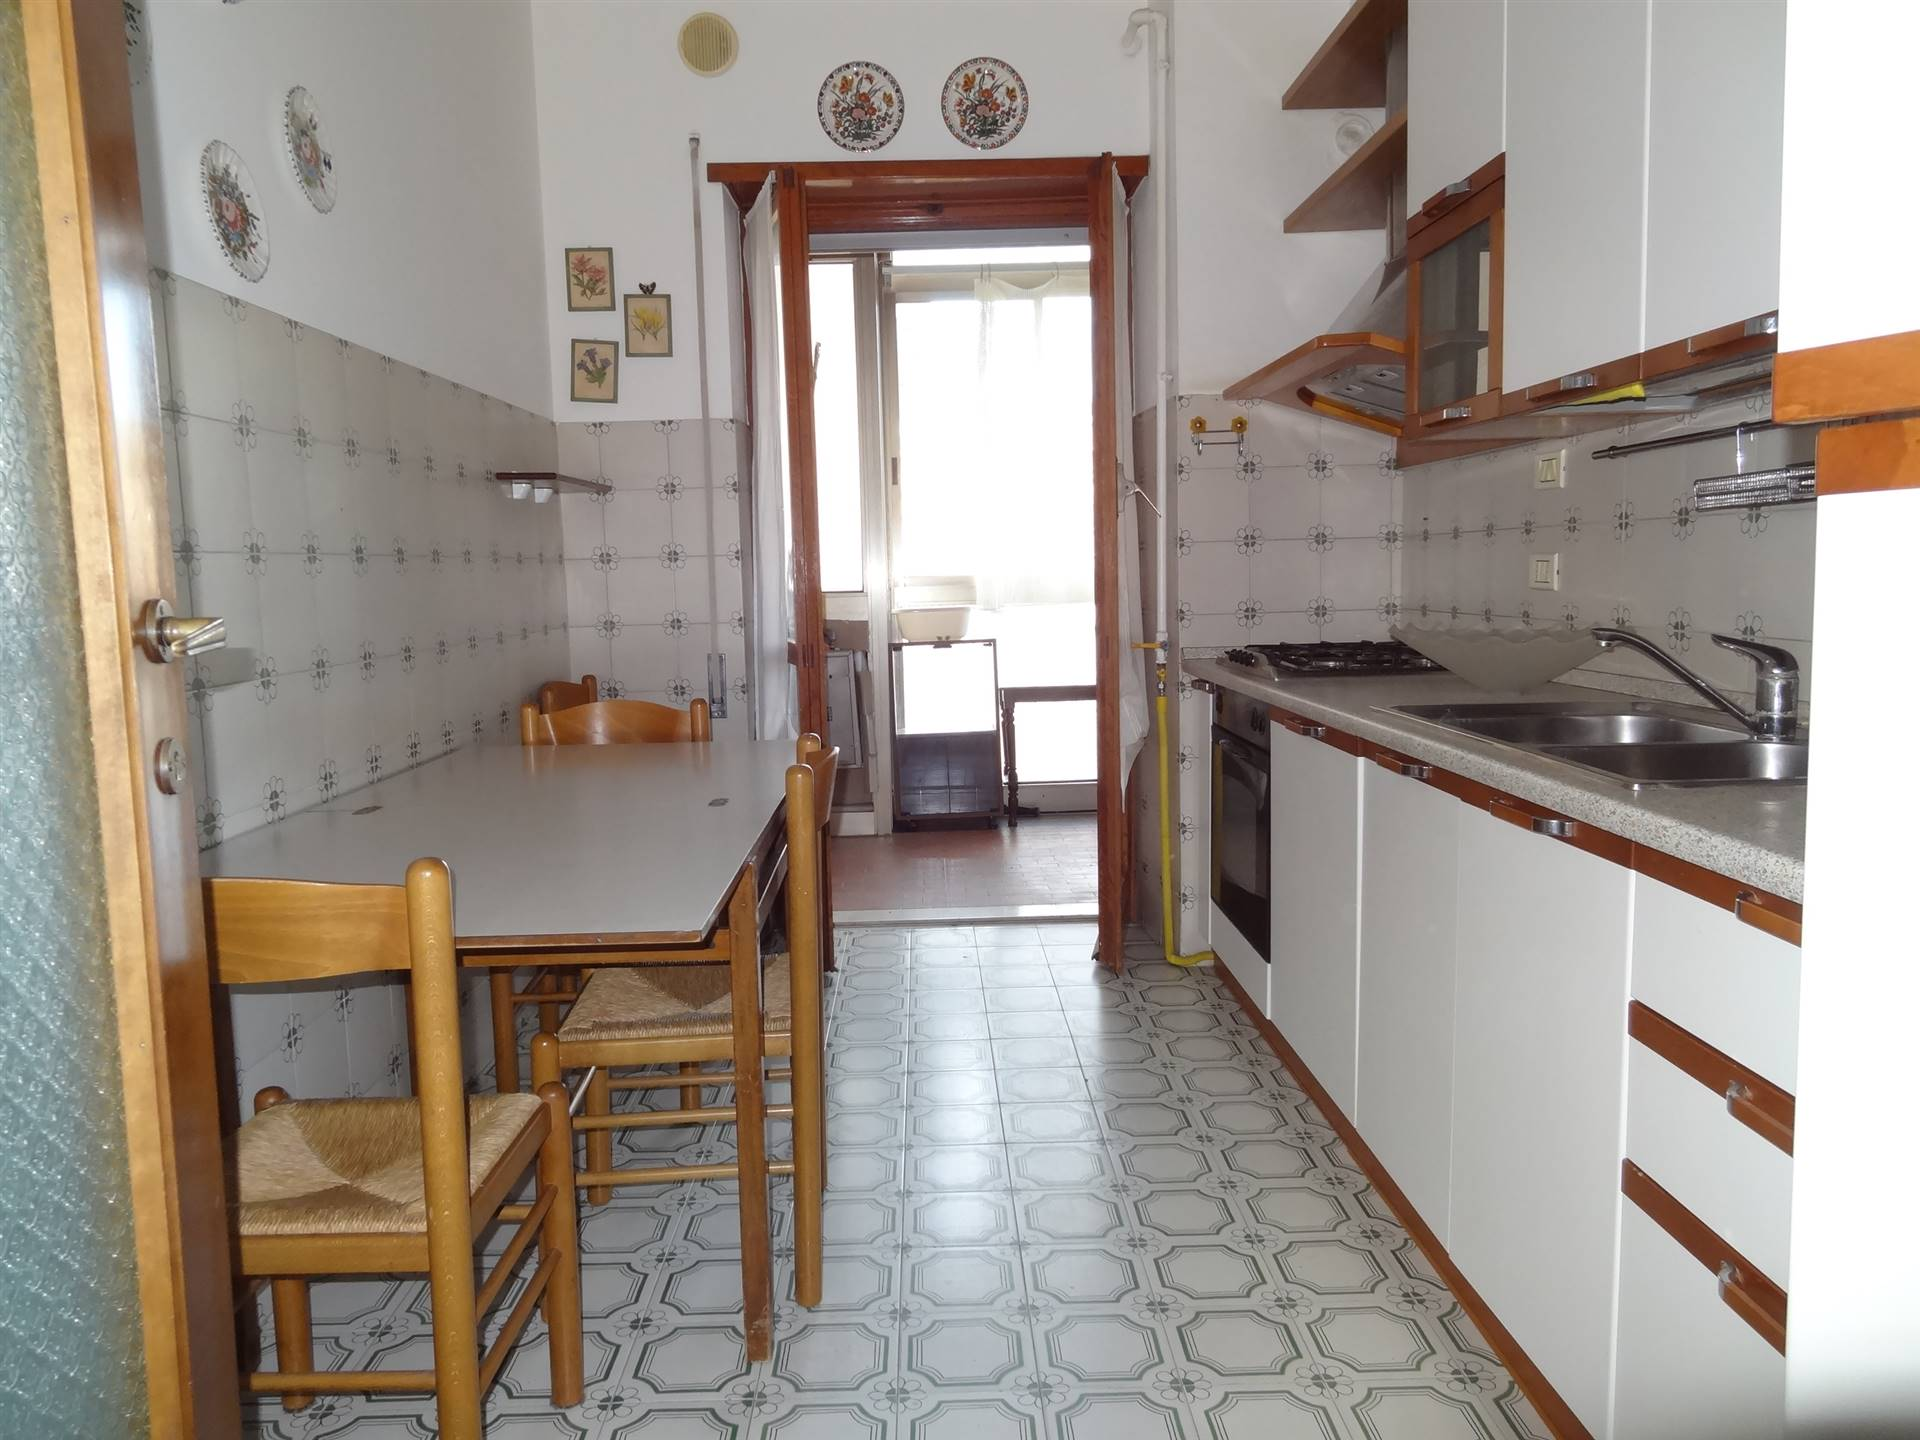 MARGHERA, VENEZIA, Apartment for sale of 106 Sq. mt., Good condition, Heating Individual heating system, Energetic class: F, placed at 7° on 13,